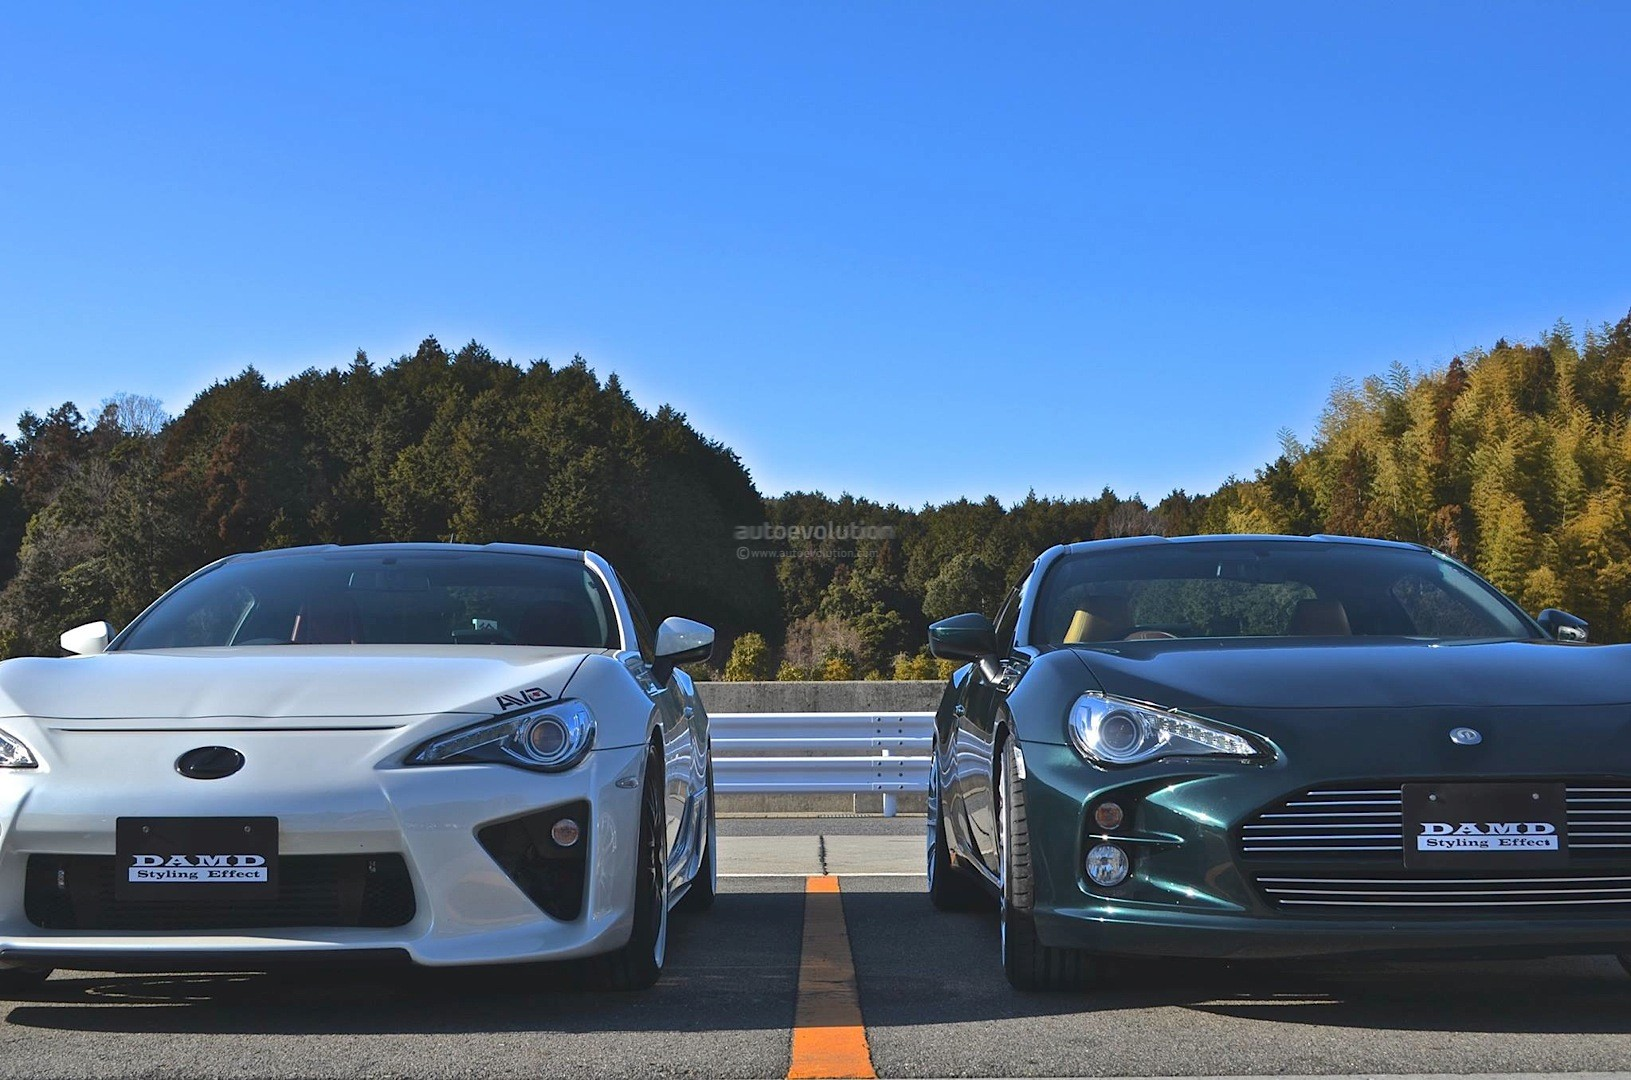 toyota-gt-86-vantage-by-damd-is-a-japanese-aston-martin-copy-video-photo-gallery_10